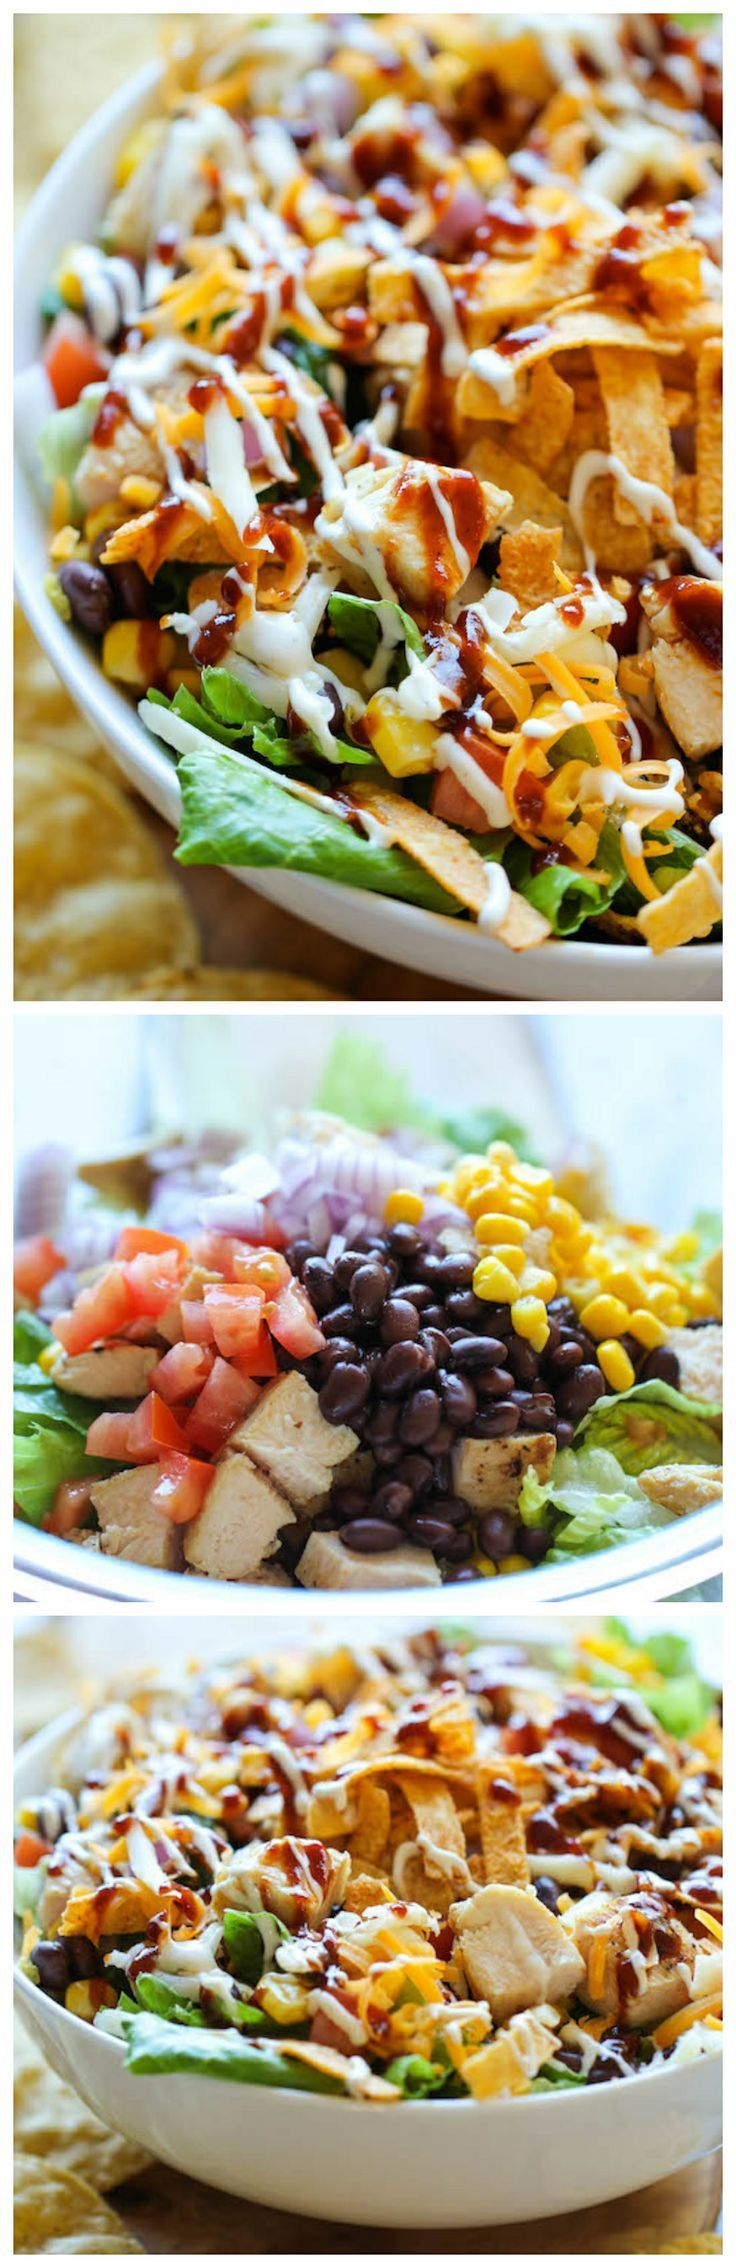 BBQ Chicken Salad - This healthy, flavorful salad comes together so quickly, absolutely will make again!